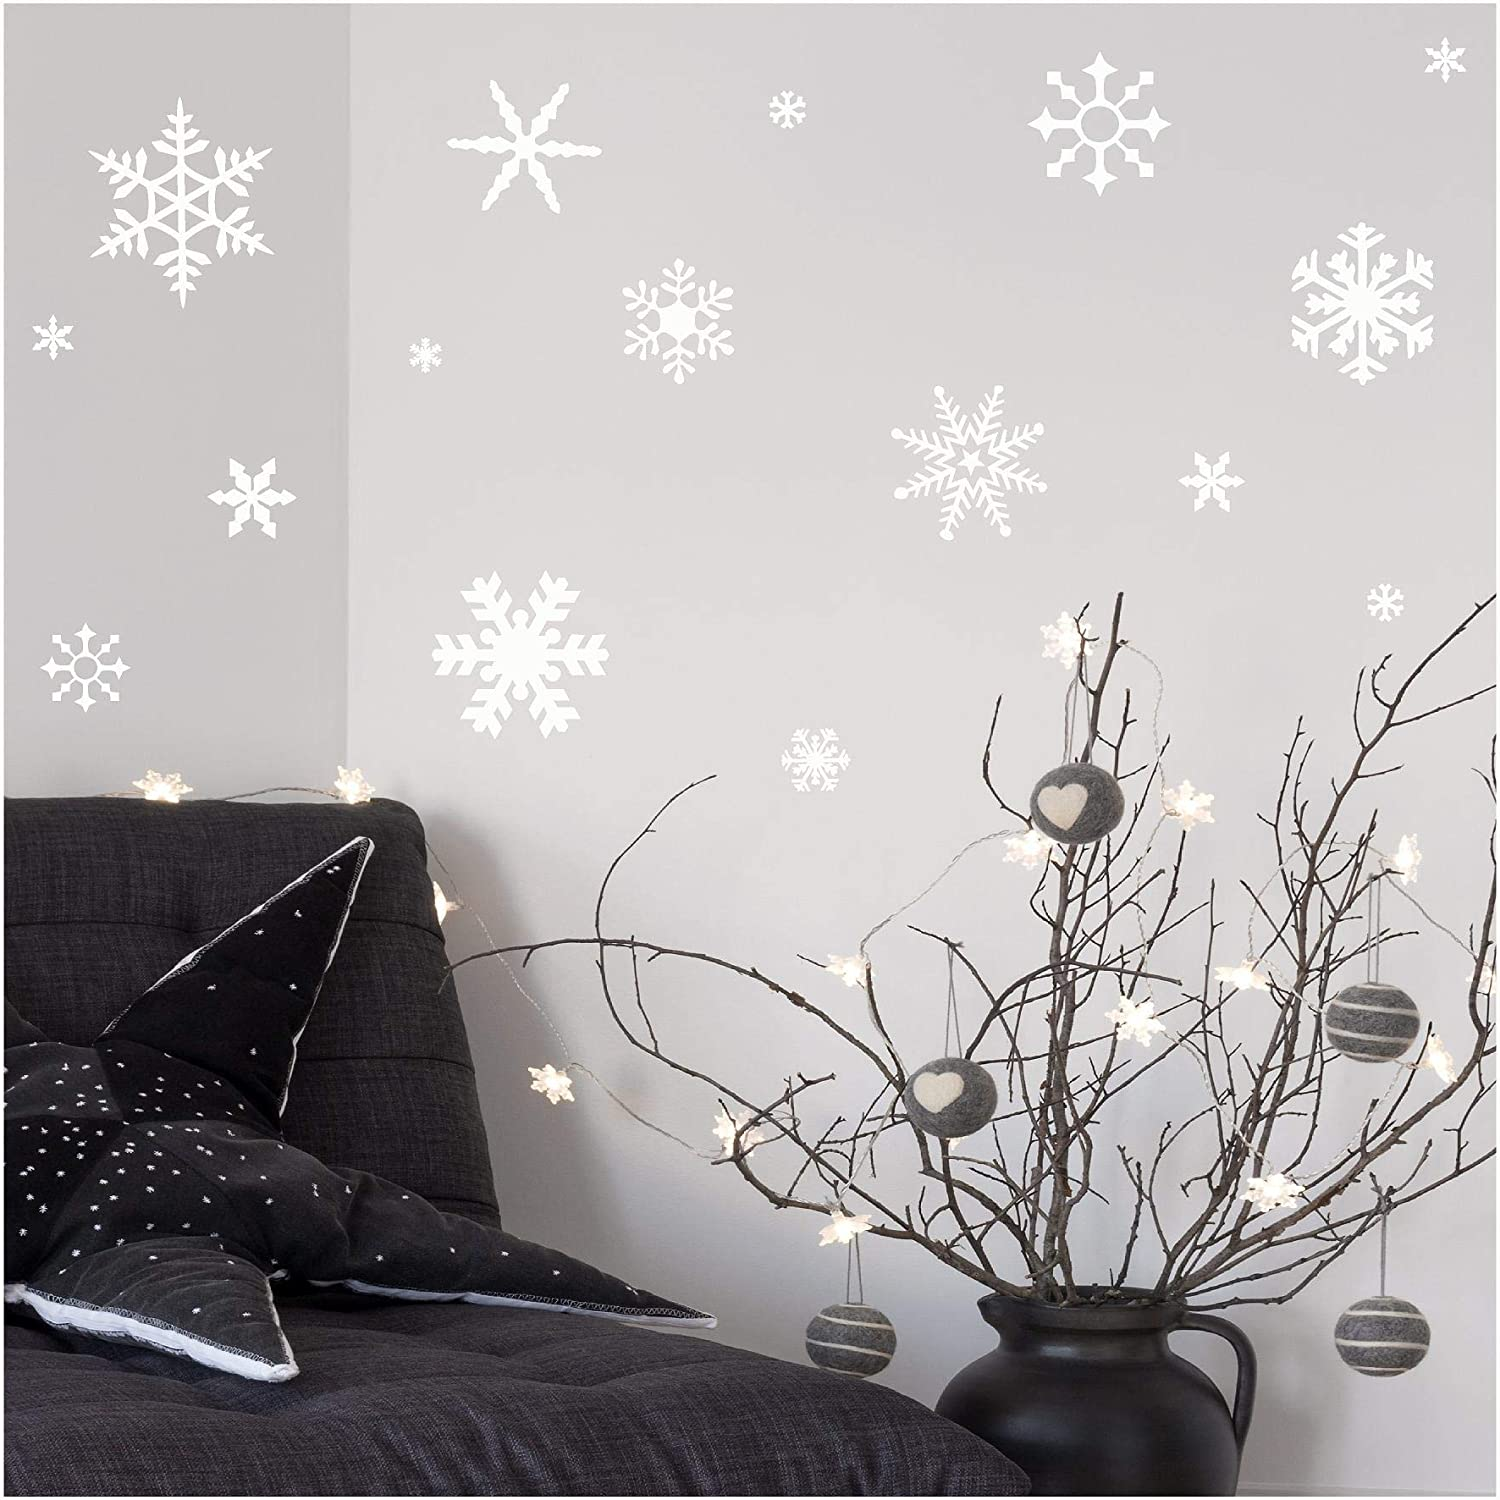 Wall Sayings Vinyl Lettering (White) Small Snowflakes Set of 30 Decal Home Decor Art Quote Sticker (White)